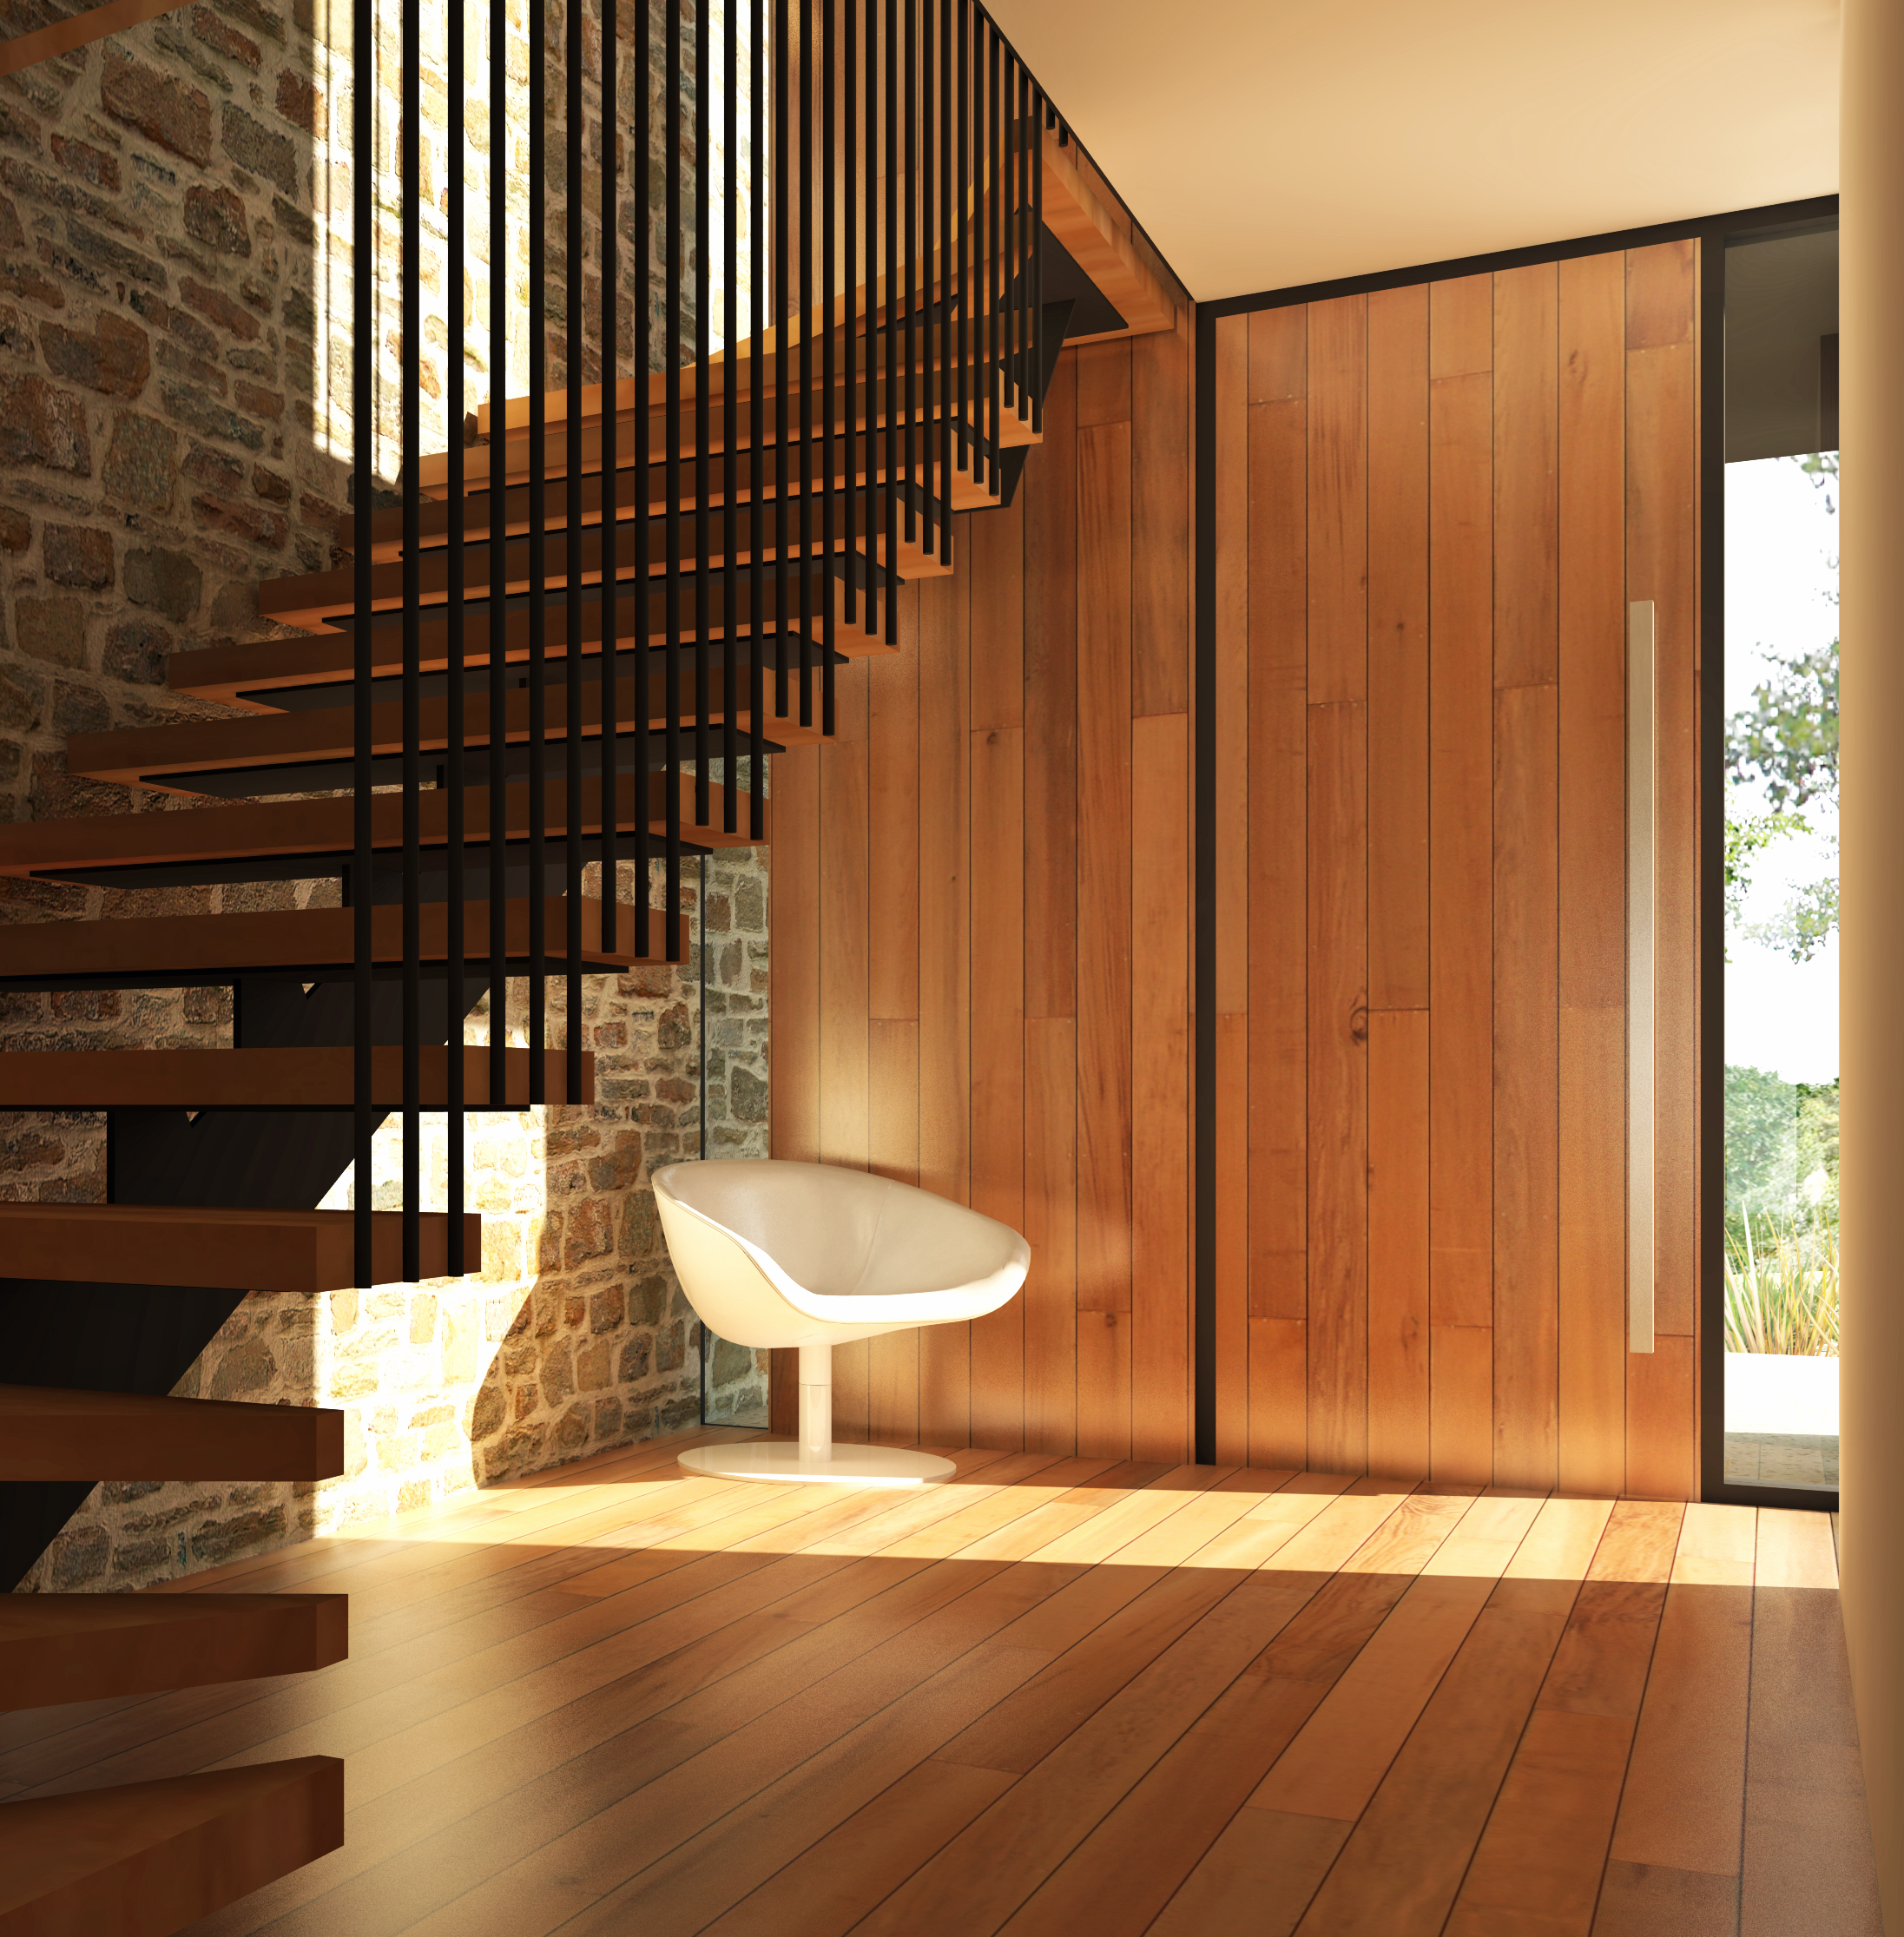 render-stair-1-cropped.jpg